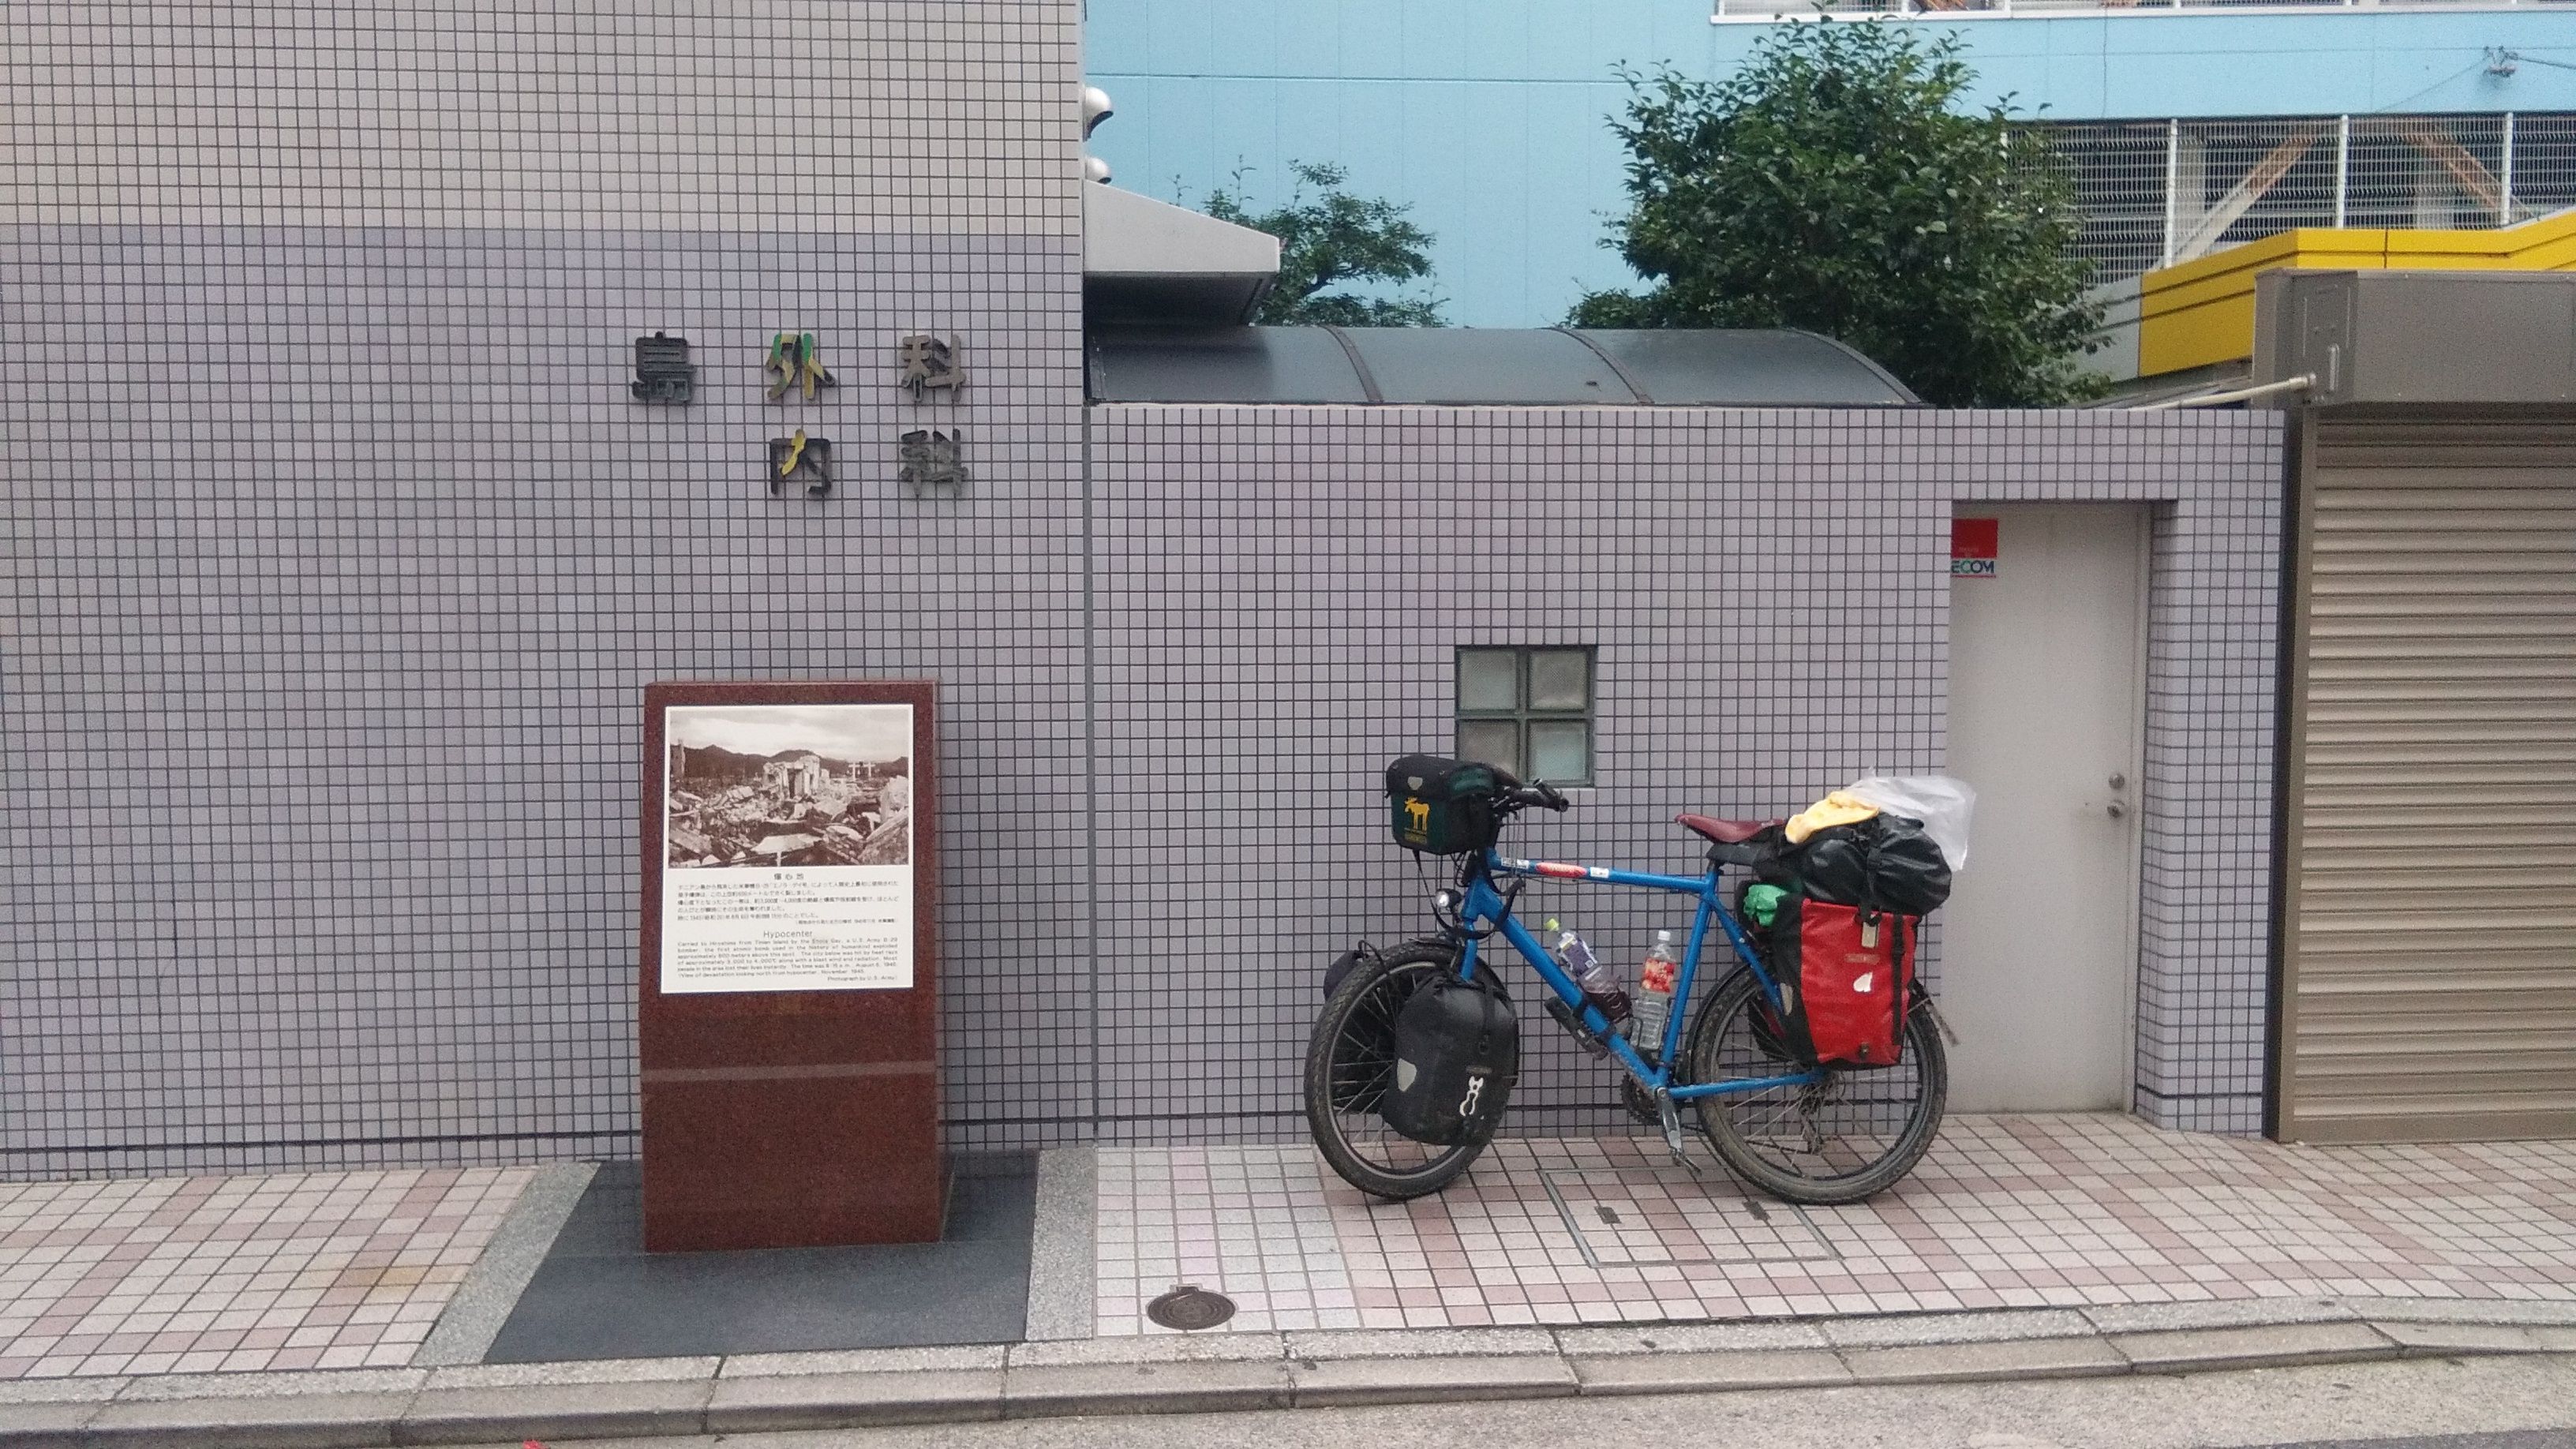 Hypocenter Hiroshima - Grief is silent